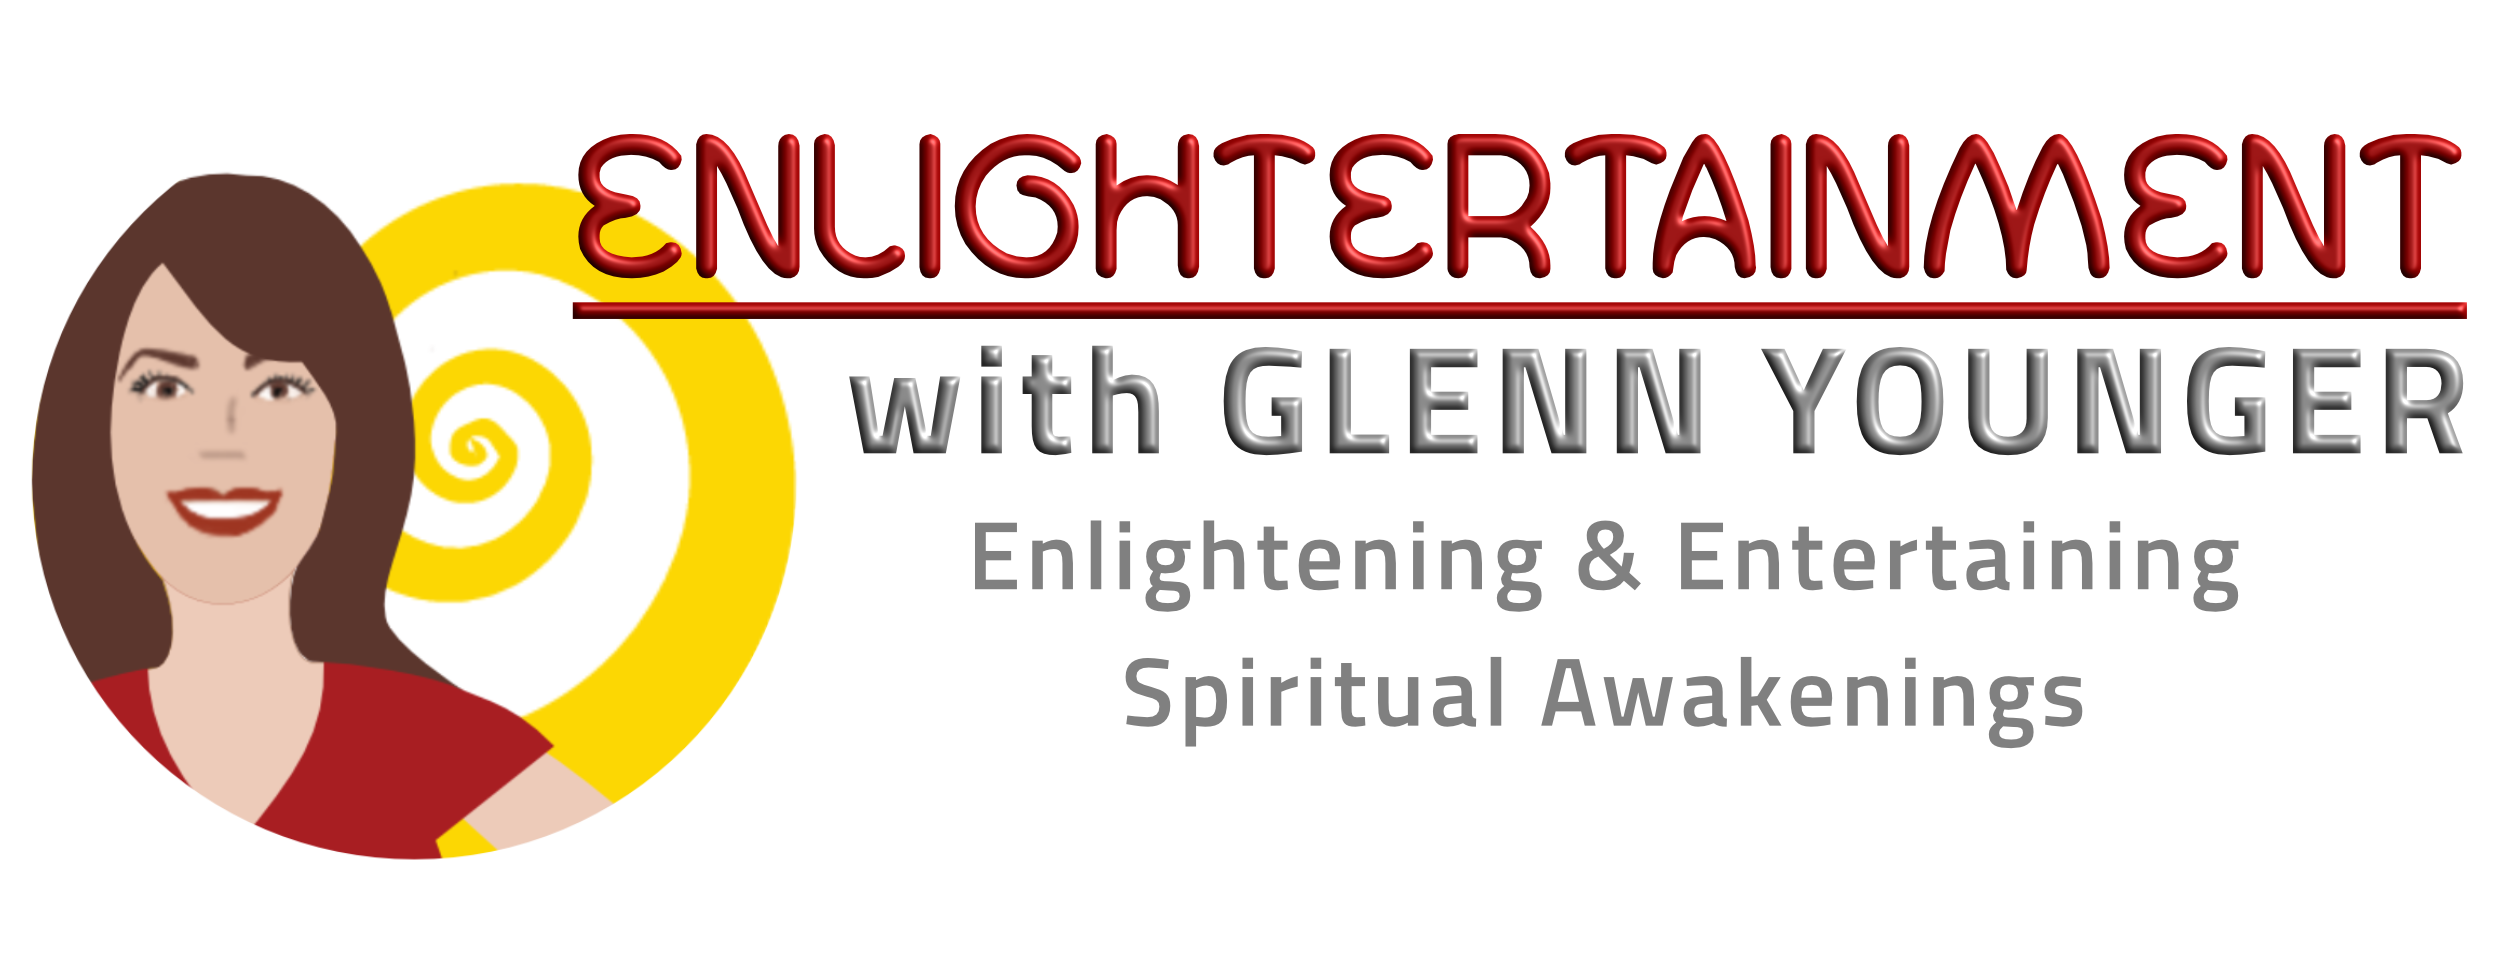 ENLIGHTERTAINMENT: Enlightening & Entertaining Spiritual Awakenings for Self-Explorers, Spiritual Alchemists, & Thought Leaders.